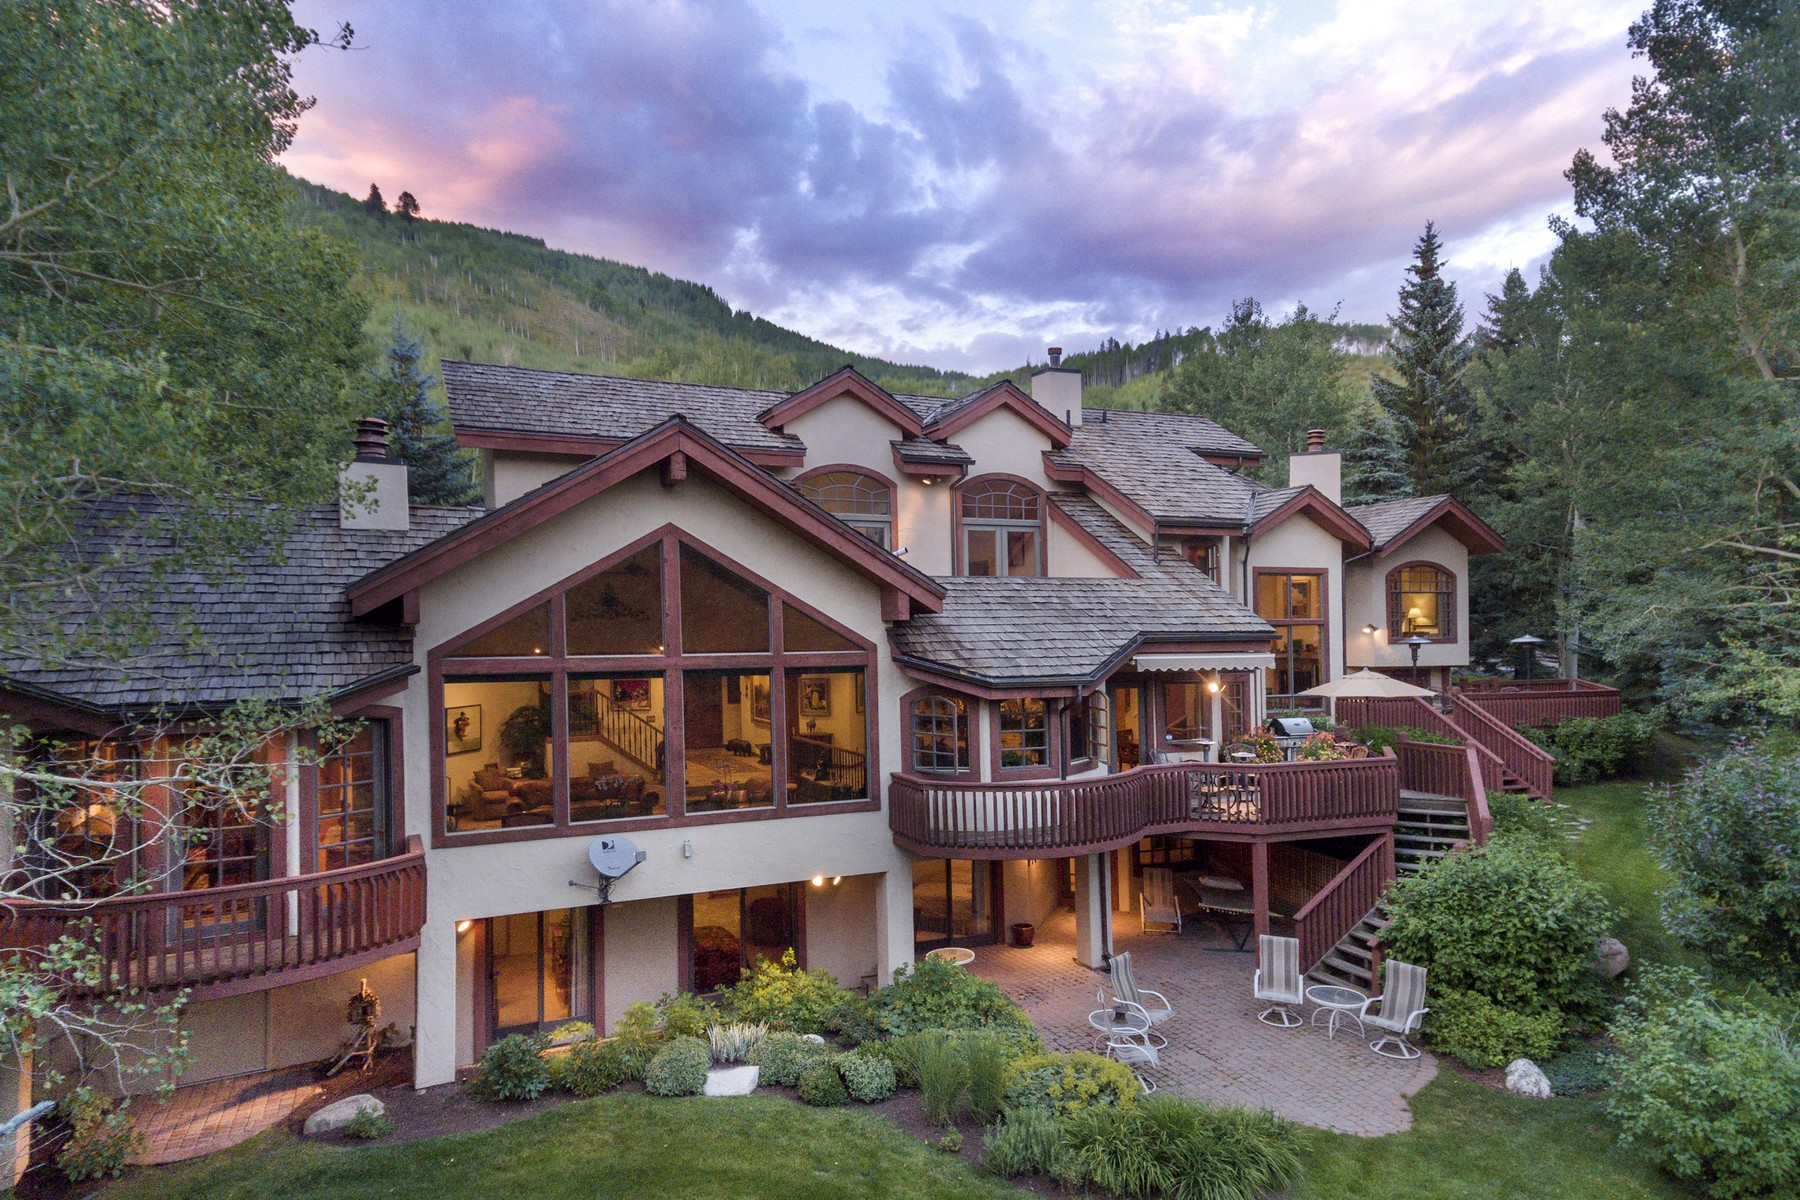 Maison unifamiliale pour l à vendre à An Alpine Oasis with Vail Mountain Views 781 Potato Patch Dr, Potato Patch, Vail, Colorado, 81657 États-Unis